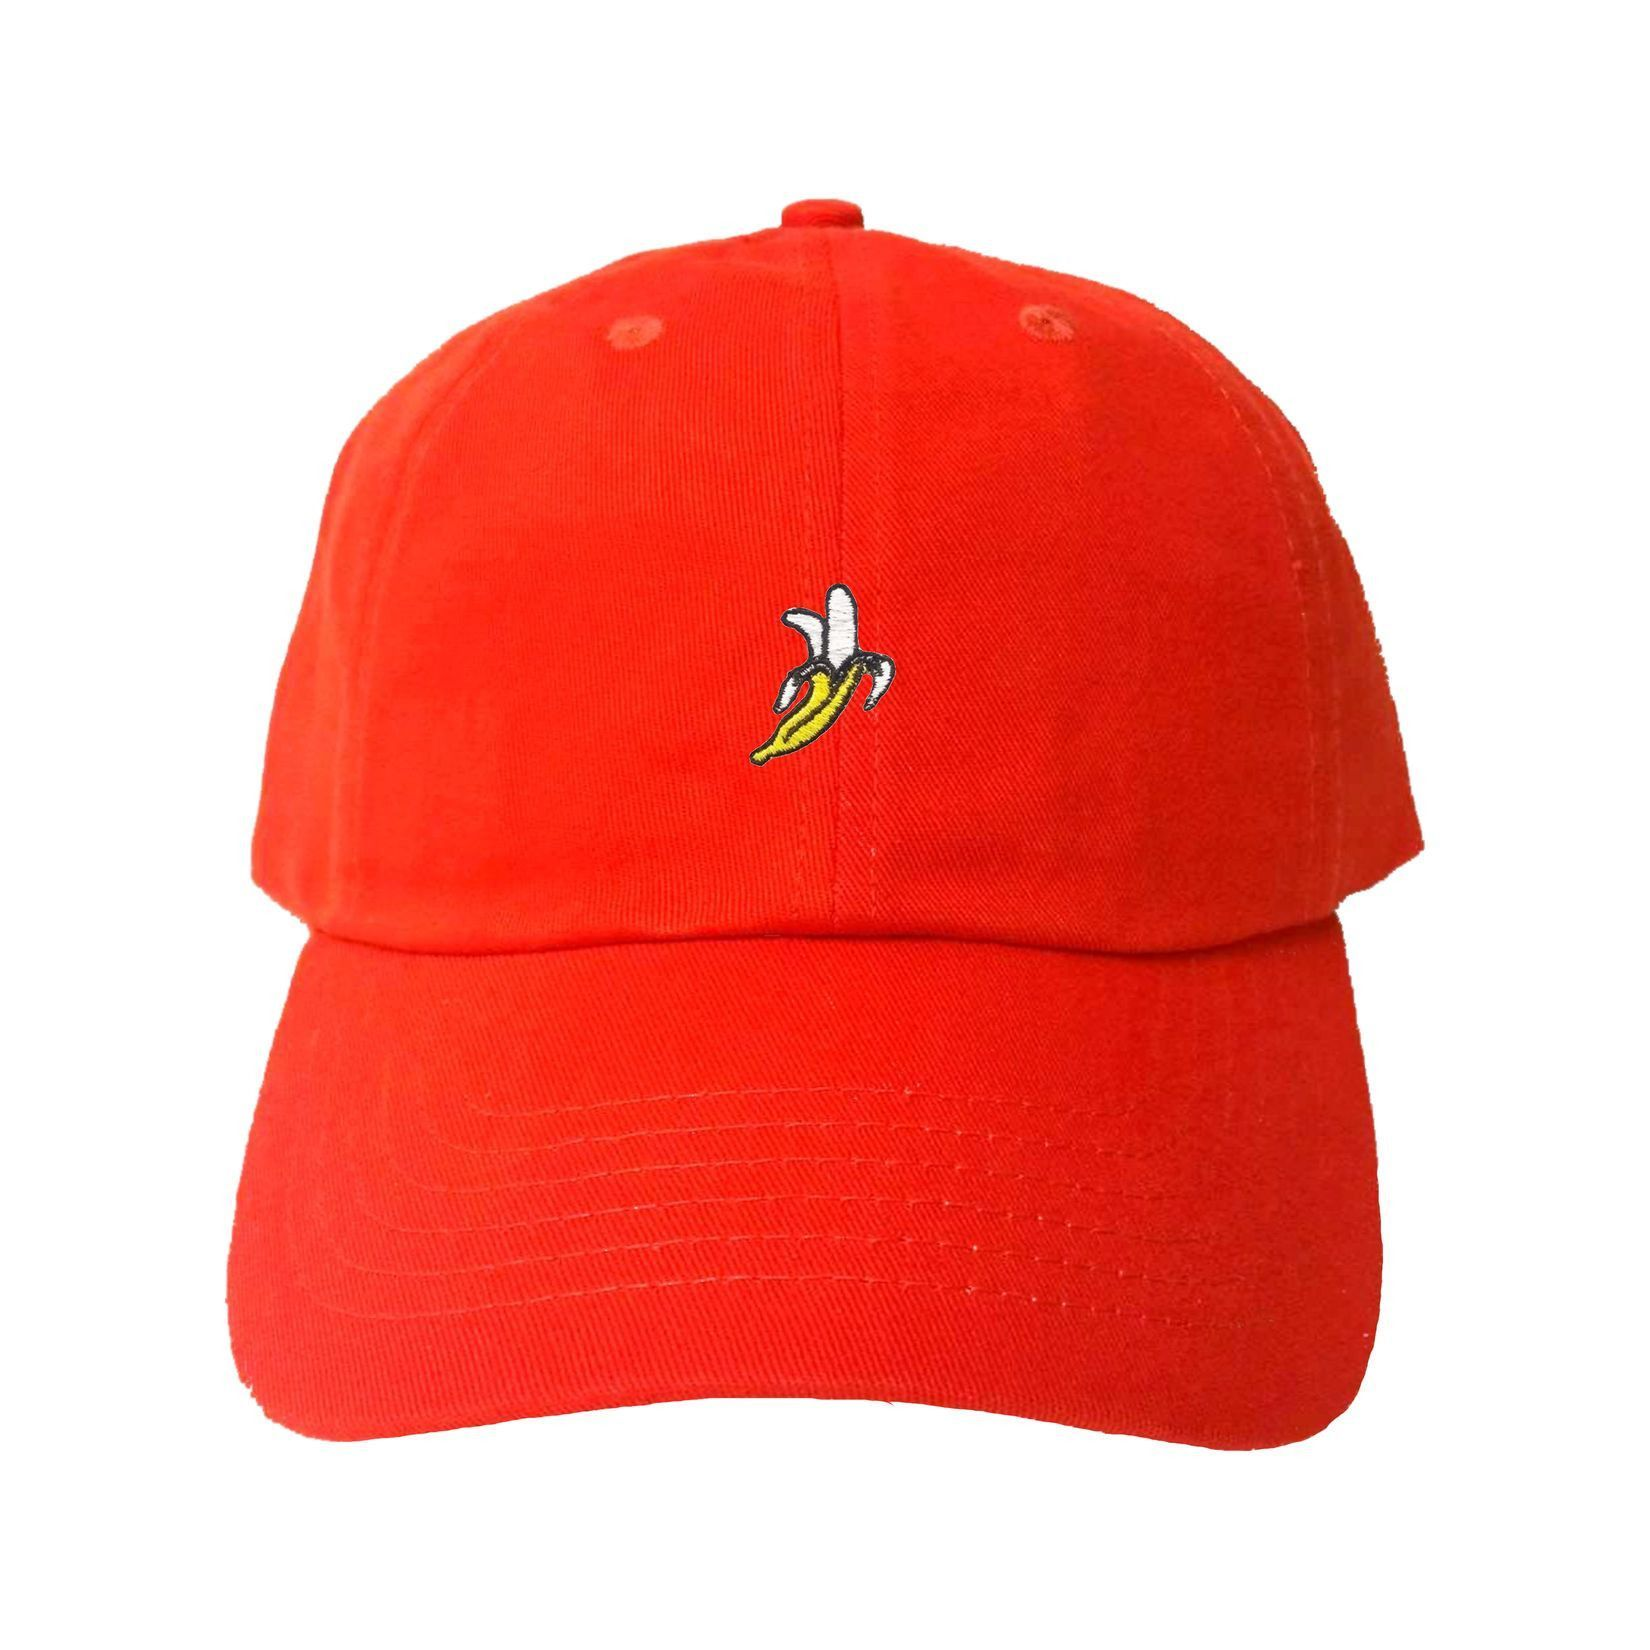 Adult Banana Embroidered Dad Hat Cap